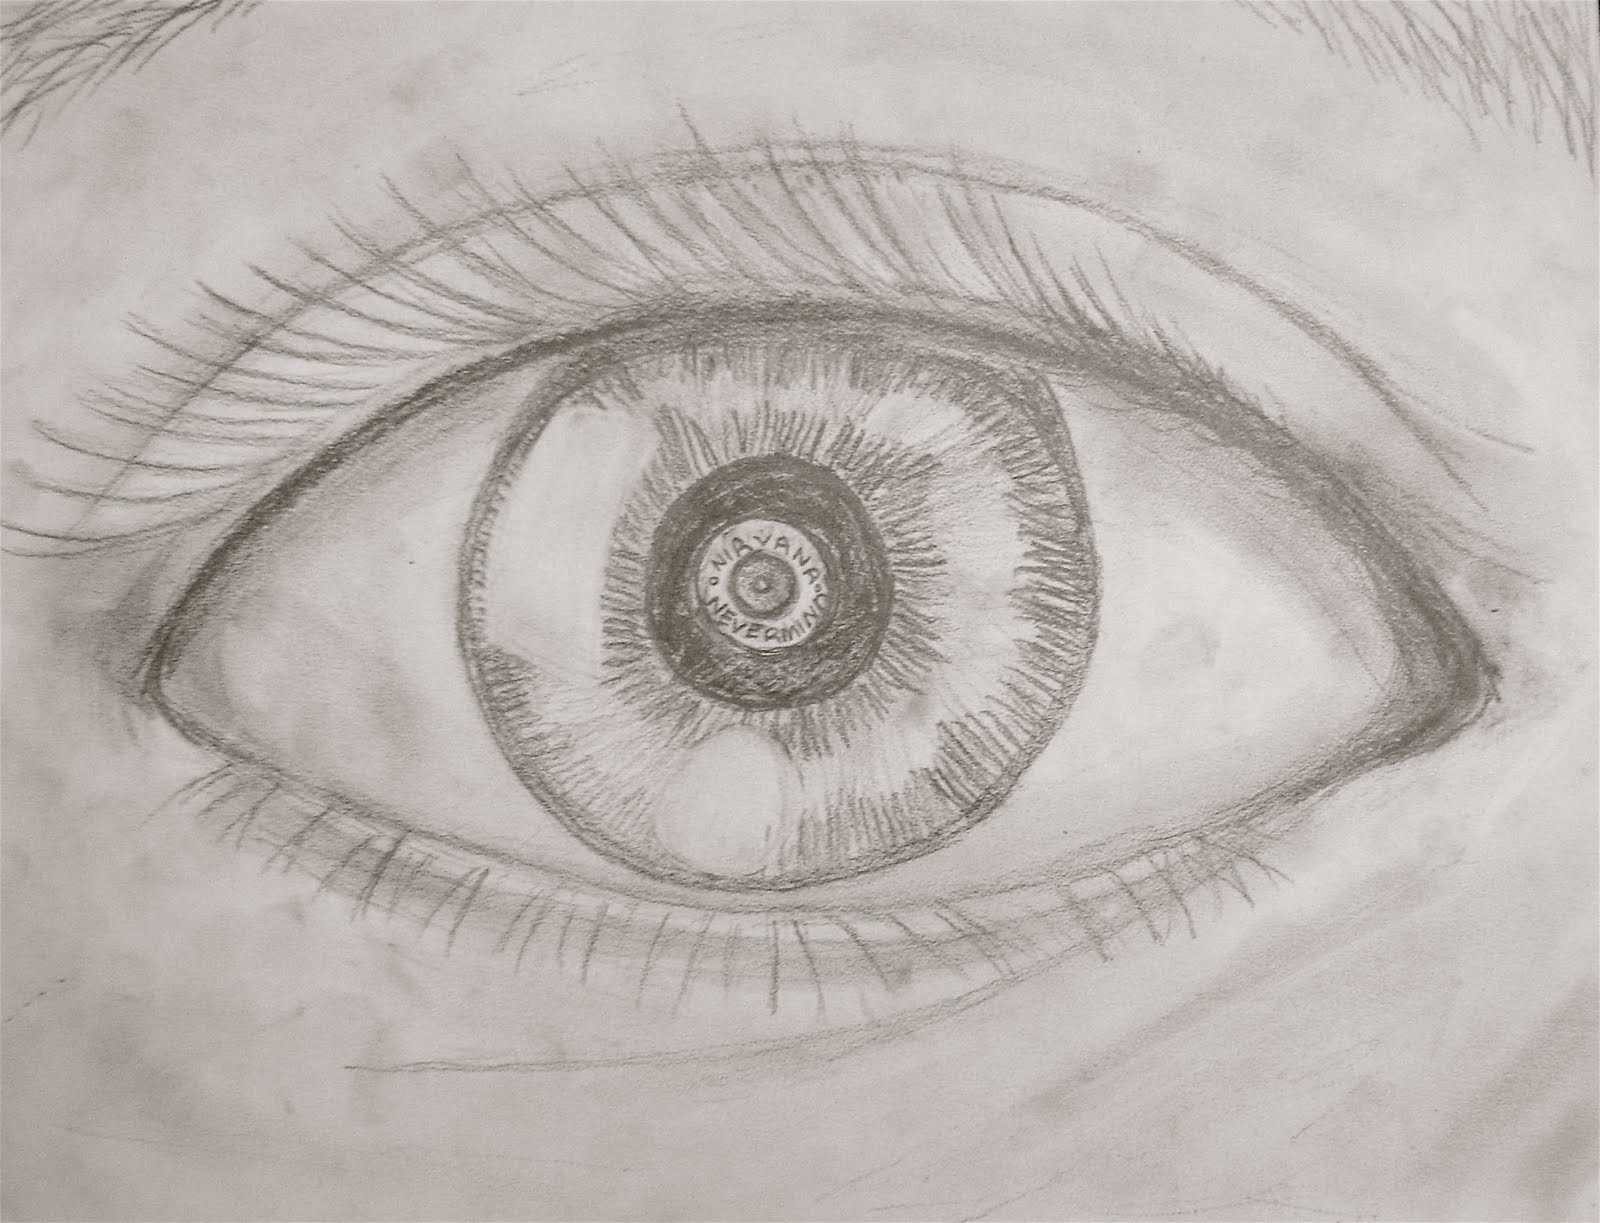 Eye drawing new calendar template site for Cool drawing websites free